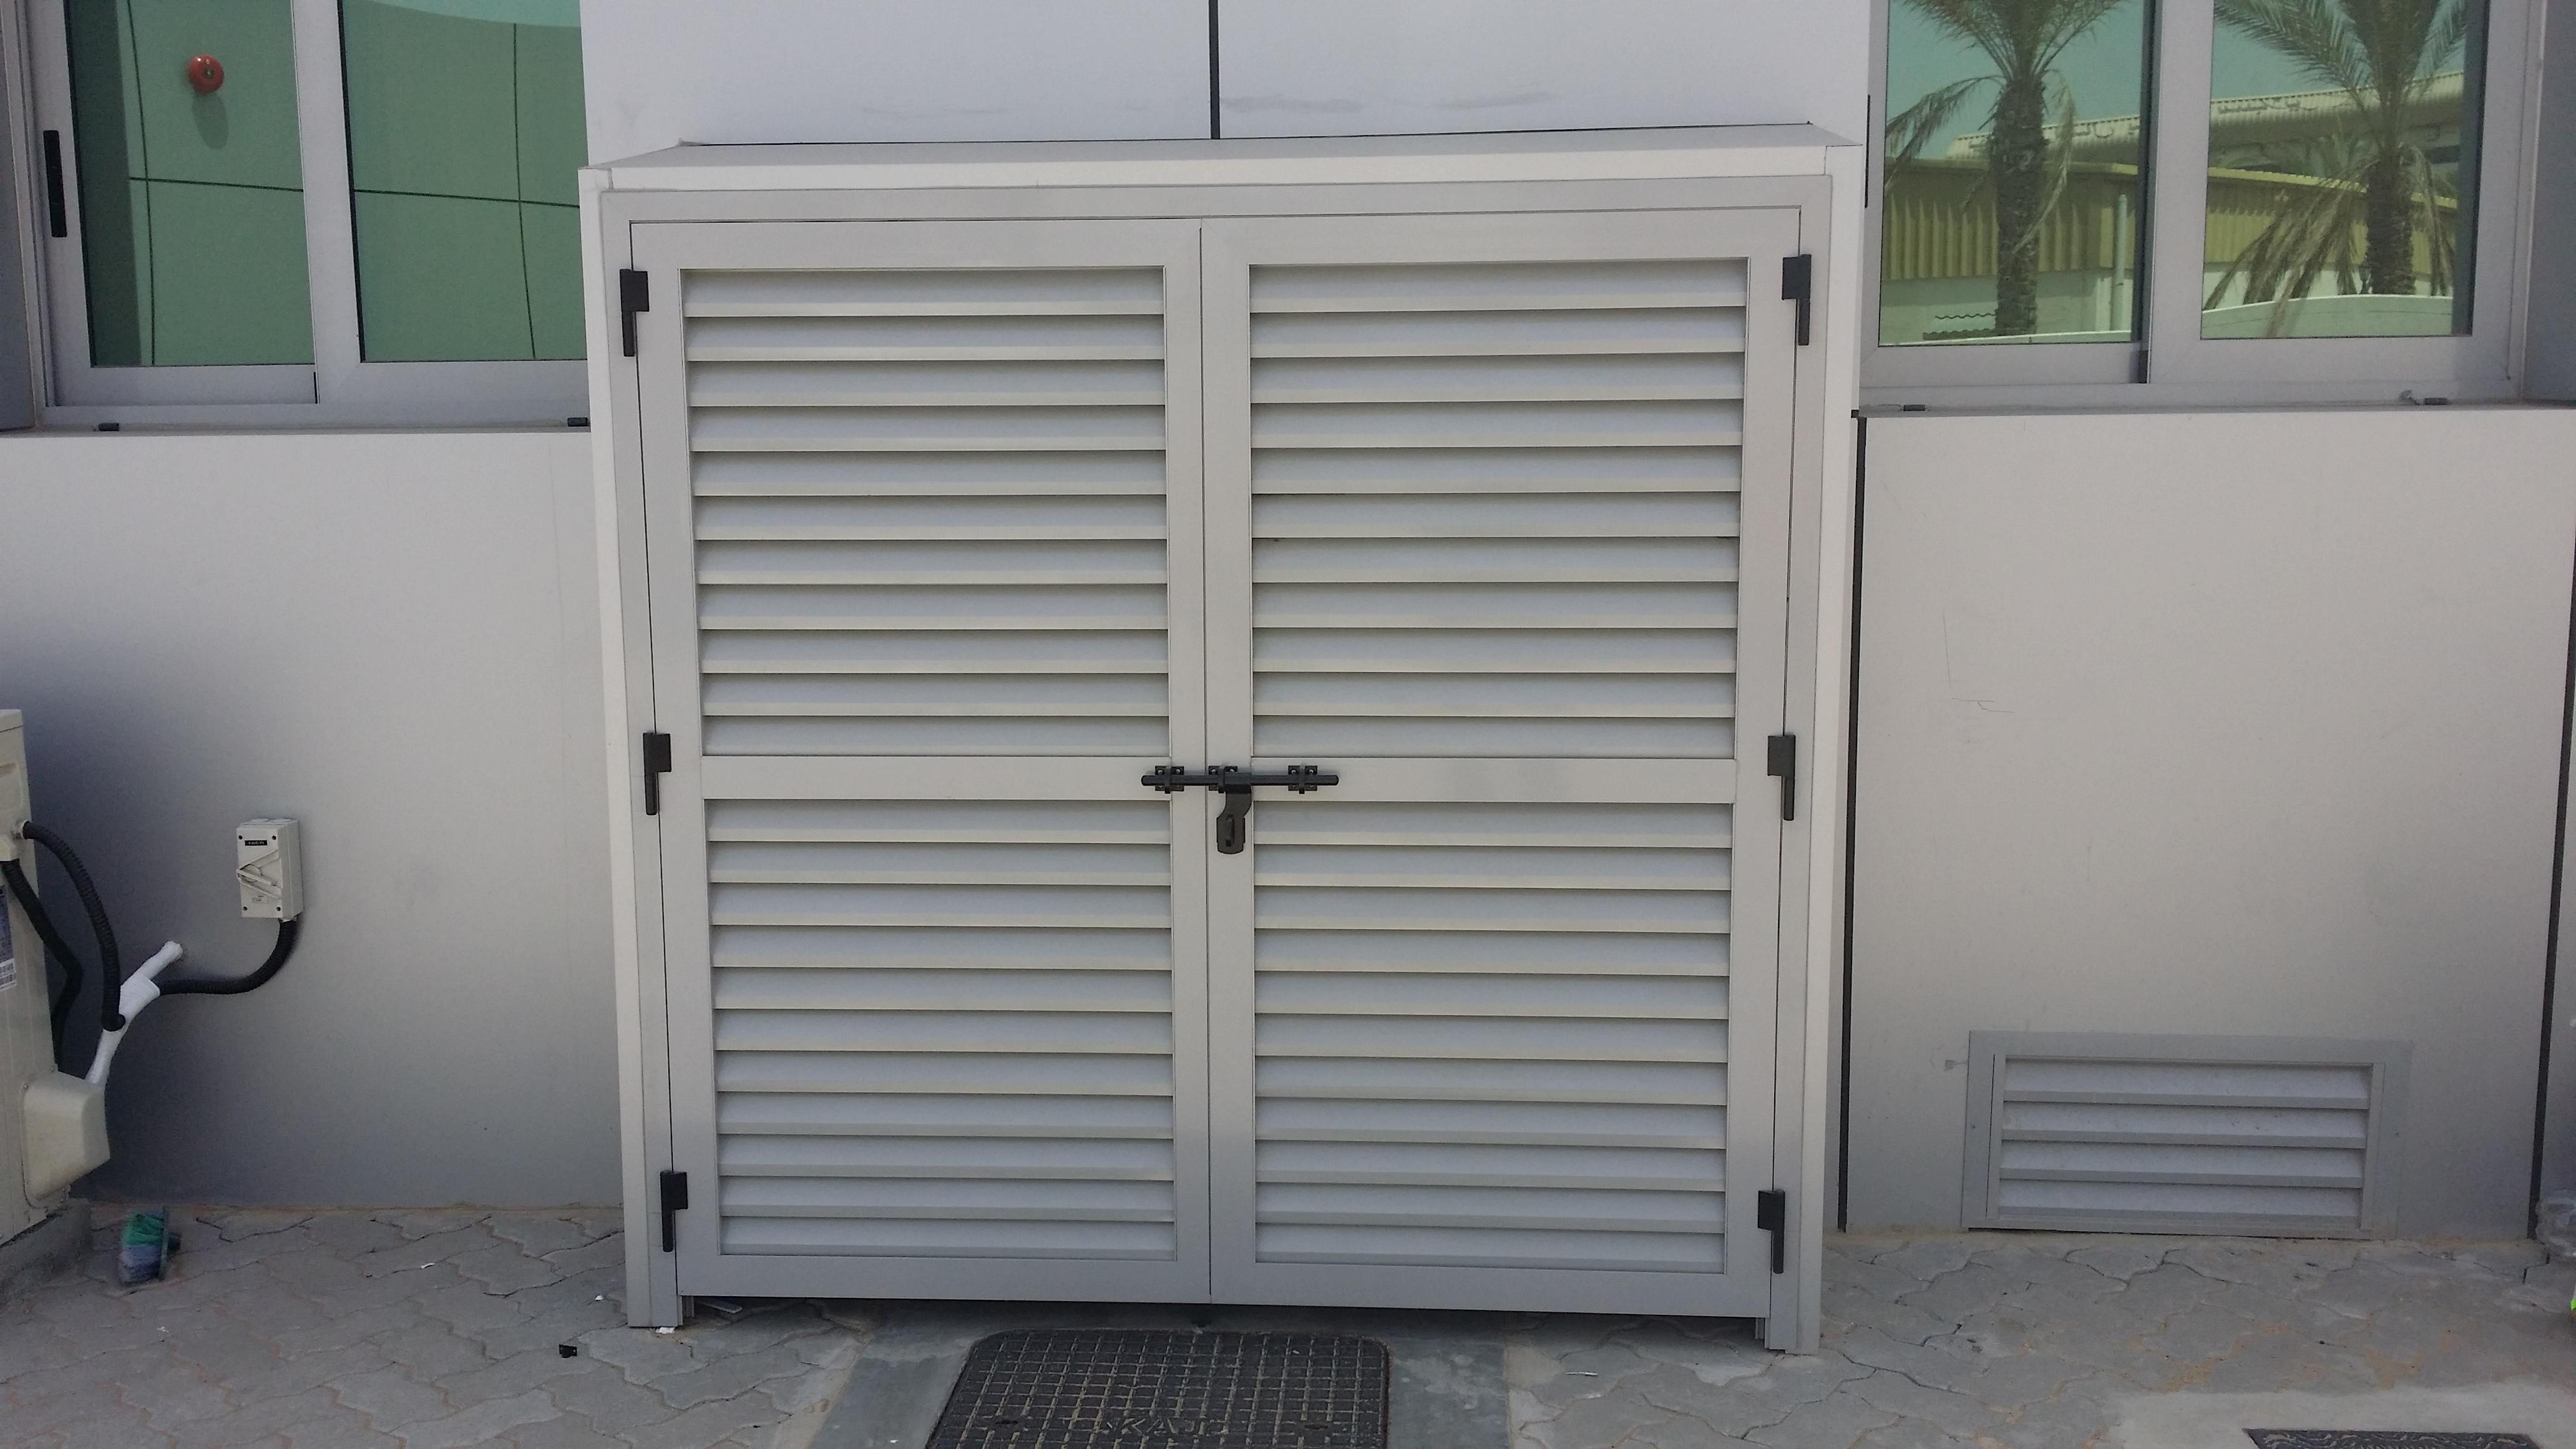 #5D634B Hamilton Group Recommended 5167 Metal Louvered Doors pics with 4128x2322 px on helpvideos.info - Air Conditioners, Air Coolers and more